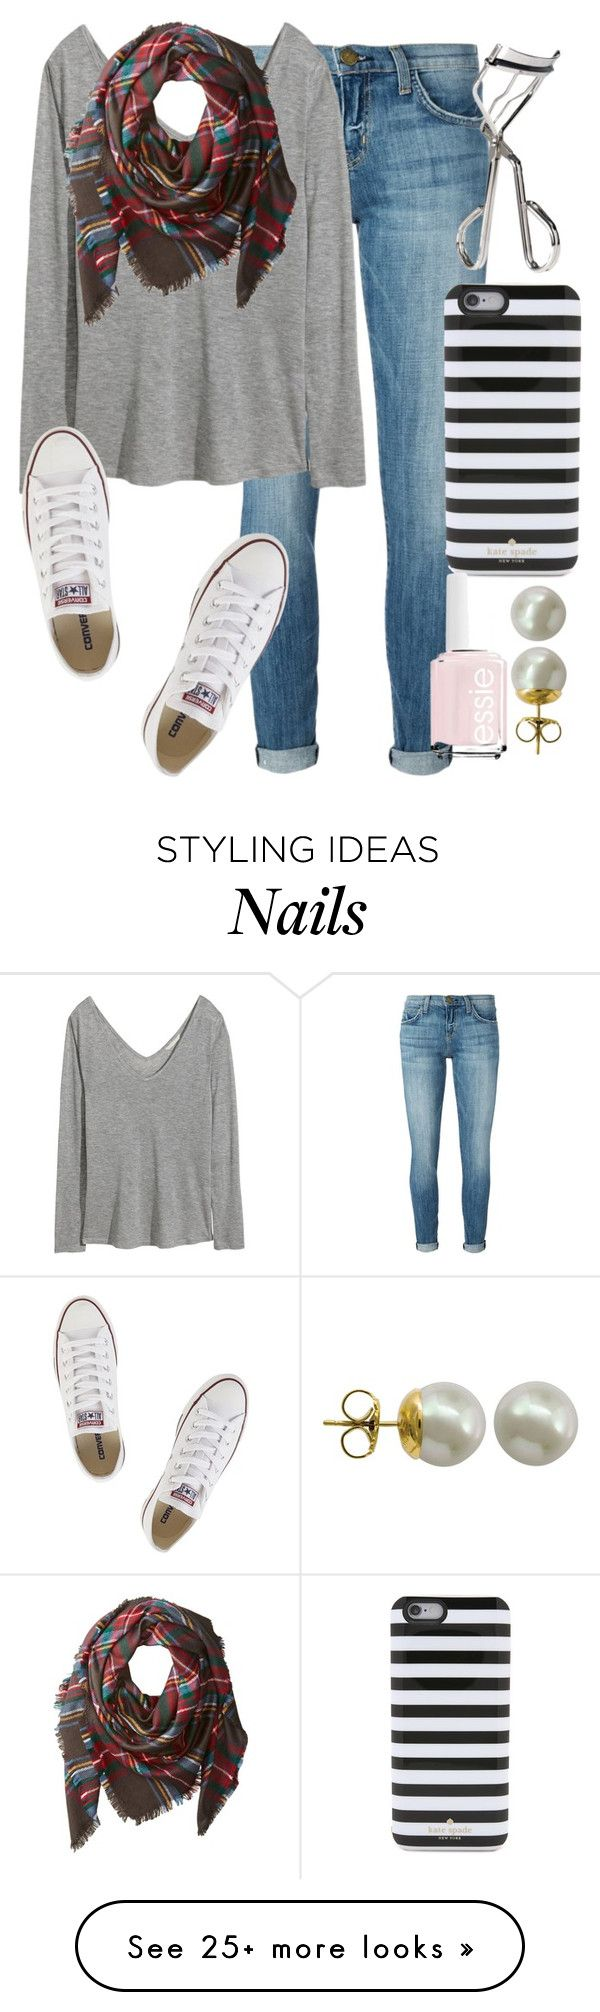 """""""*breaths rlly heavy bc is angry*"""" by elizabethannee on Polyvore featuring Current/Elliott, Kate Spade, H&M, Benefit, Buji Baja, Converse, Essie and Majorica"""